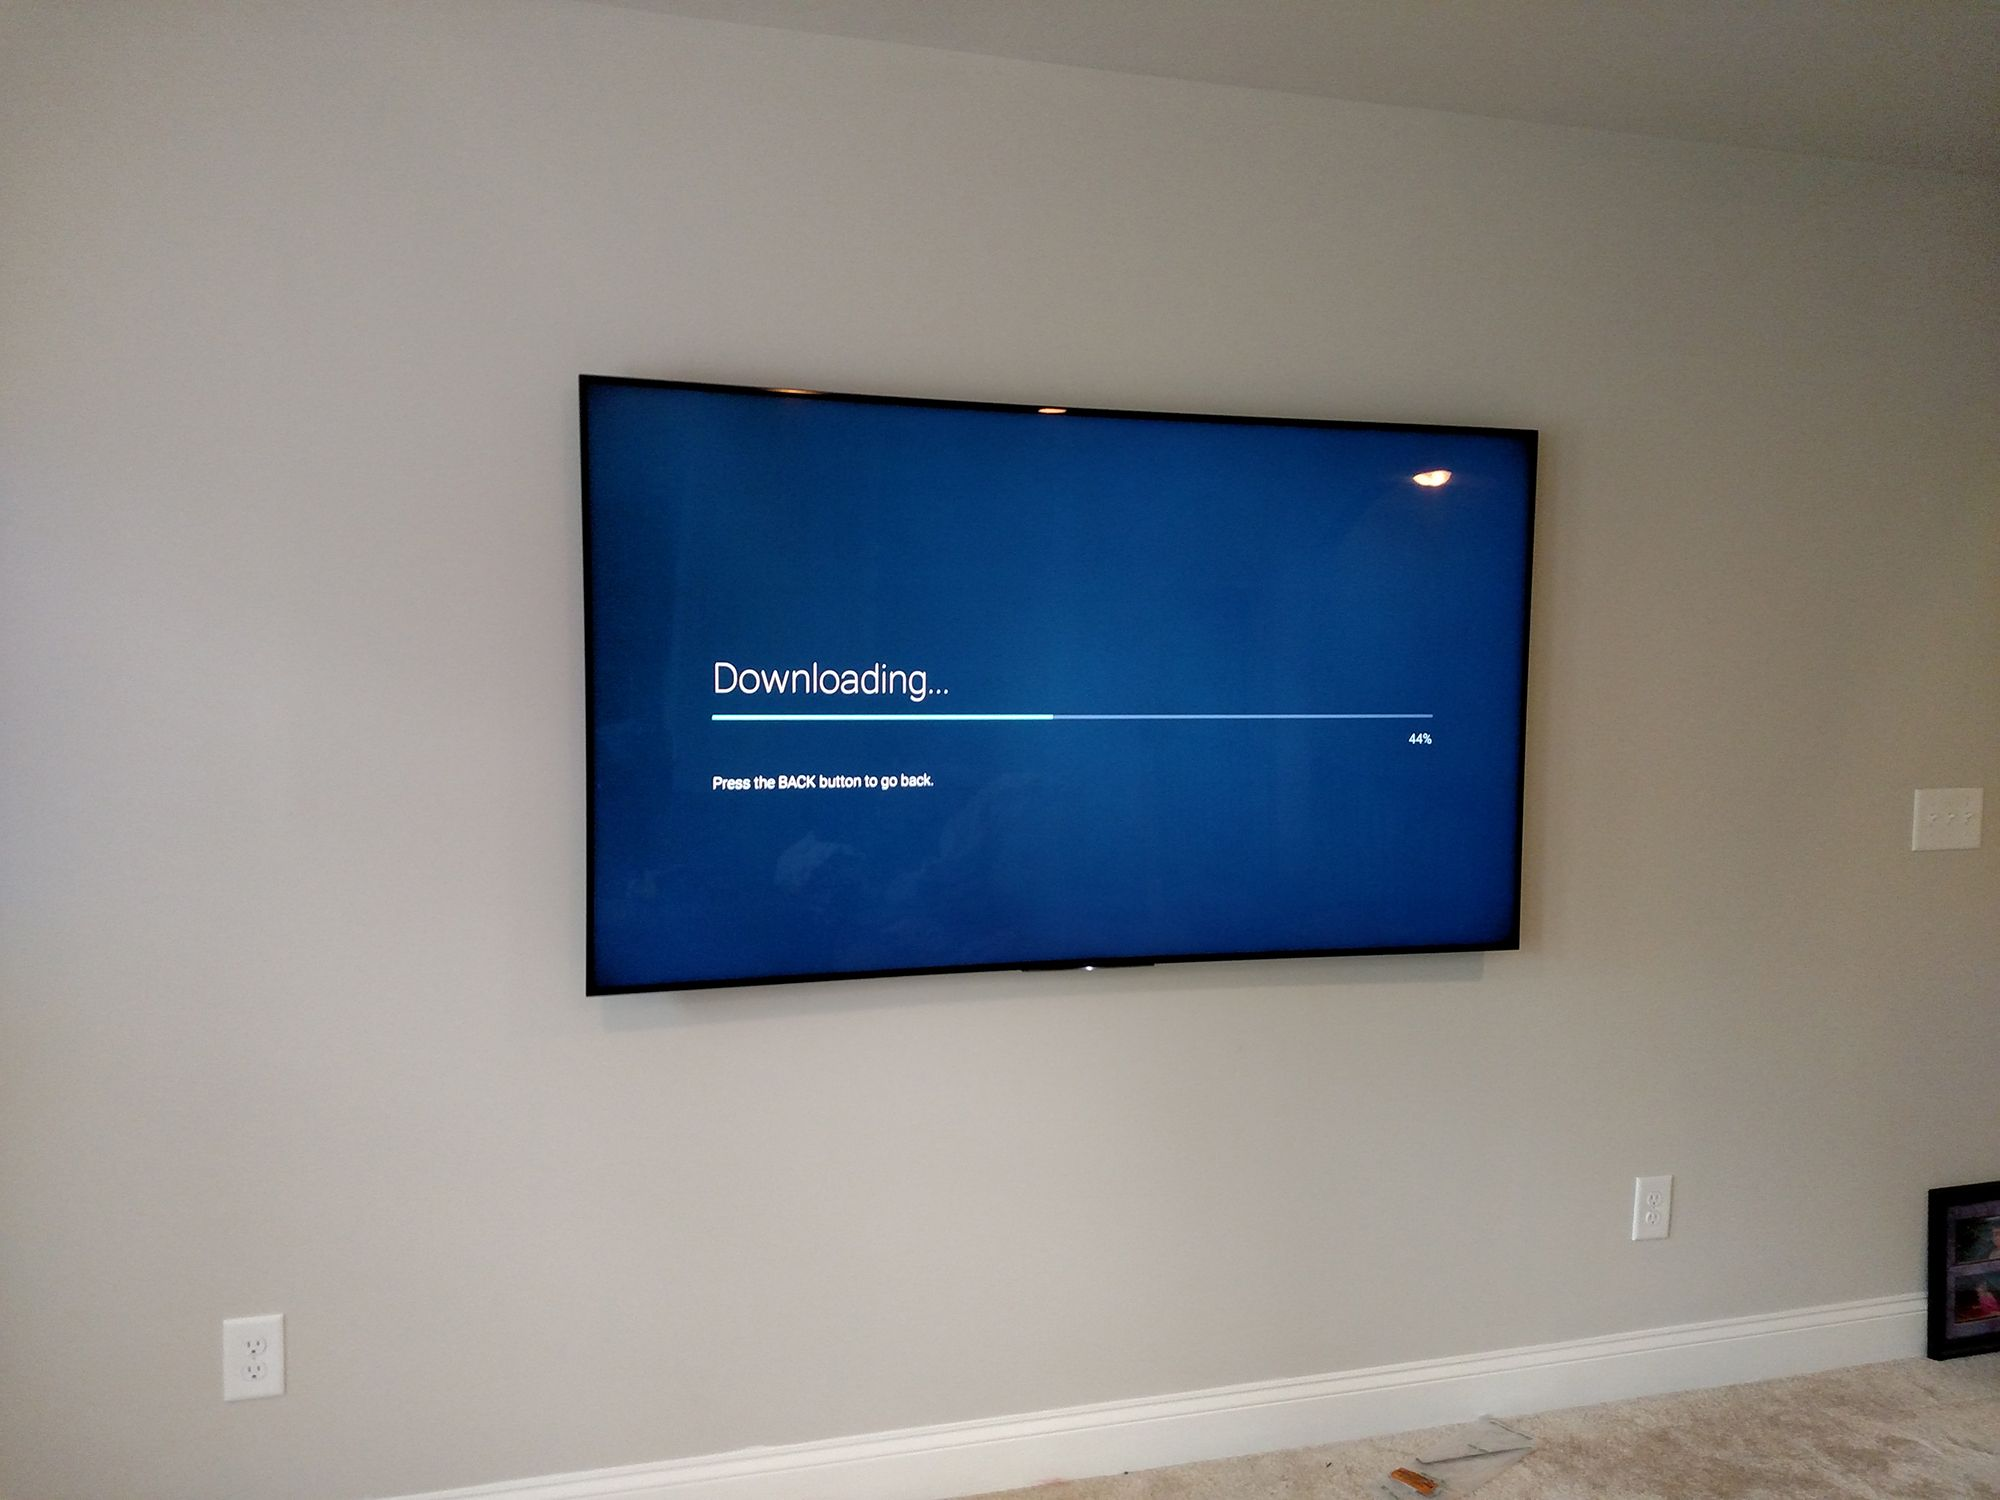 sony 75in tv install by grand central wiring home audio video with this tv [ 2000 x 1500 Pixel ]